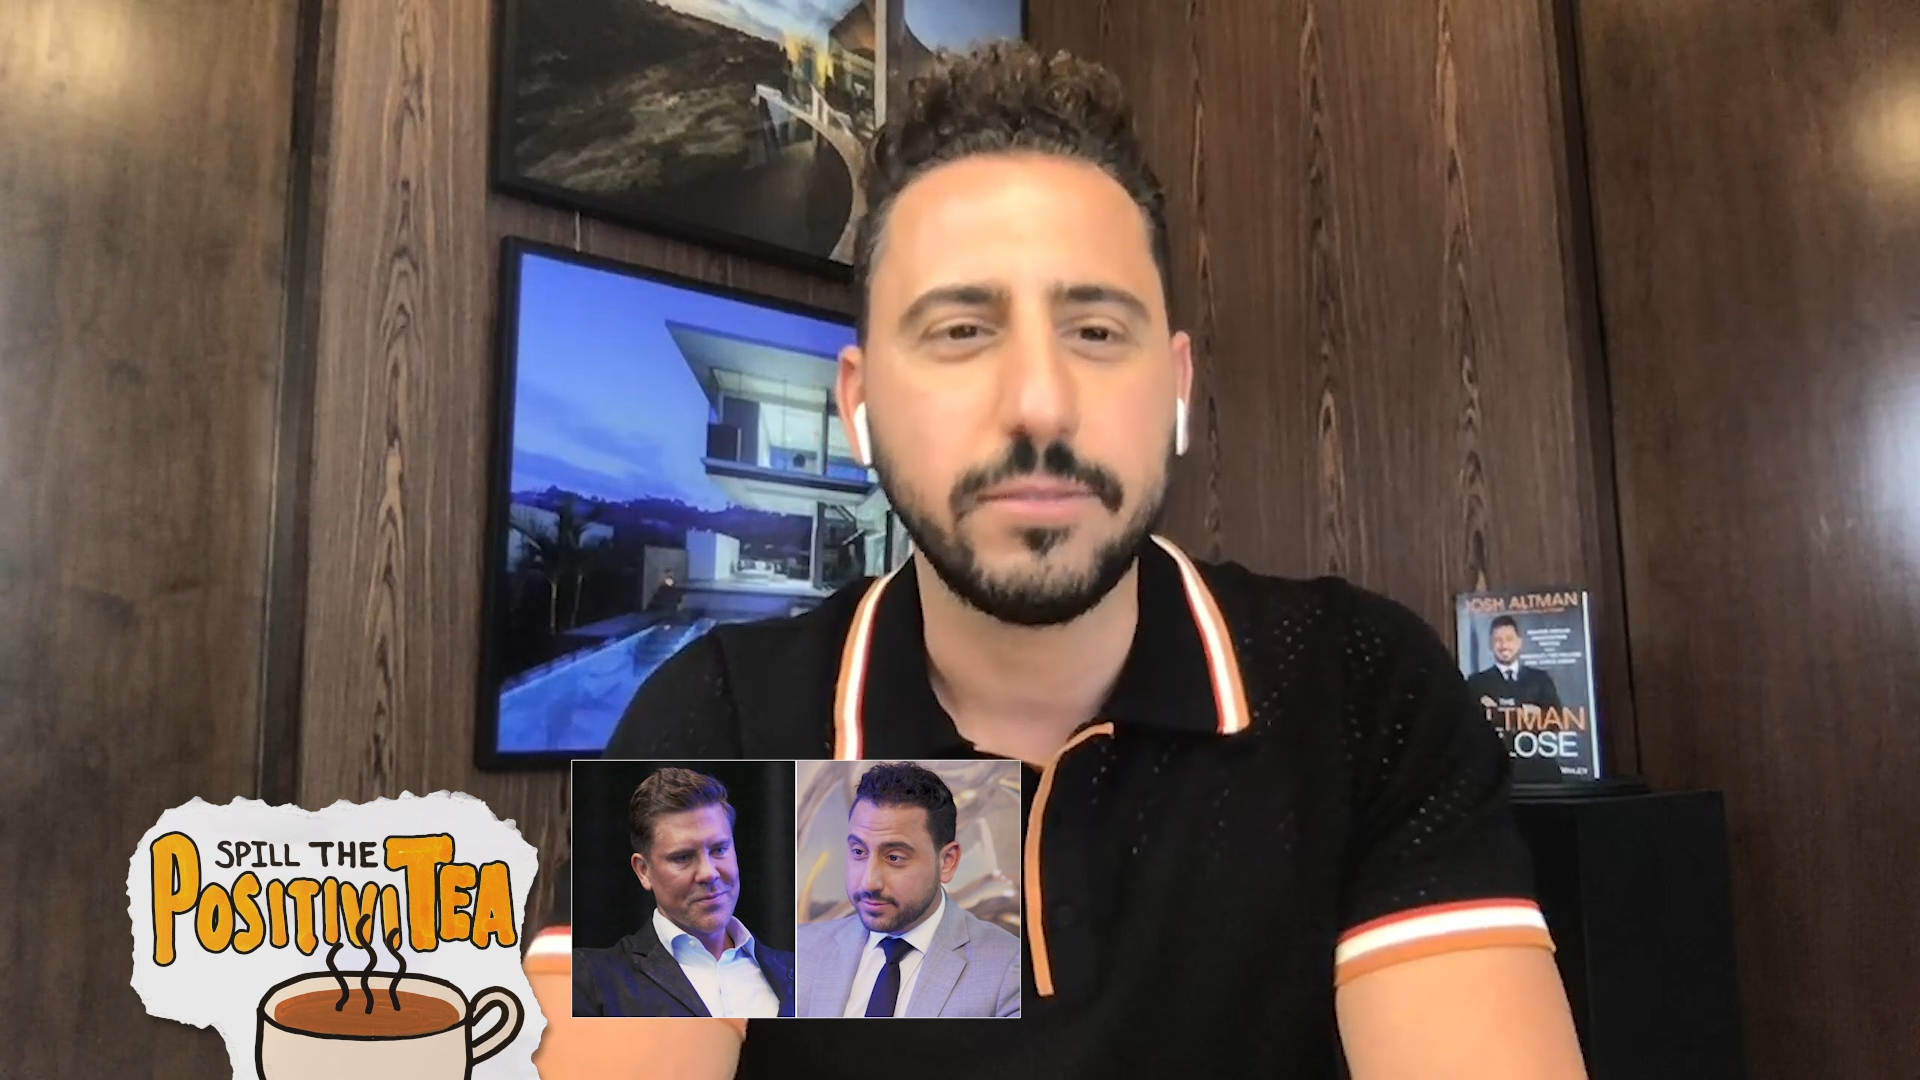 Josh Altman Dishes on Relationship with Fredrik Eklund